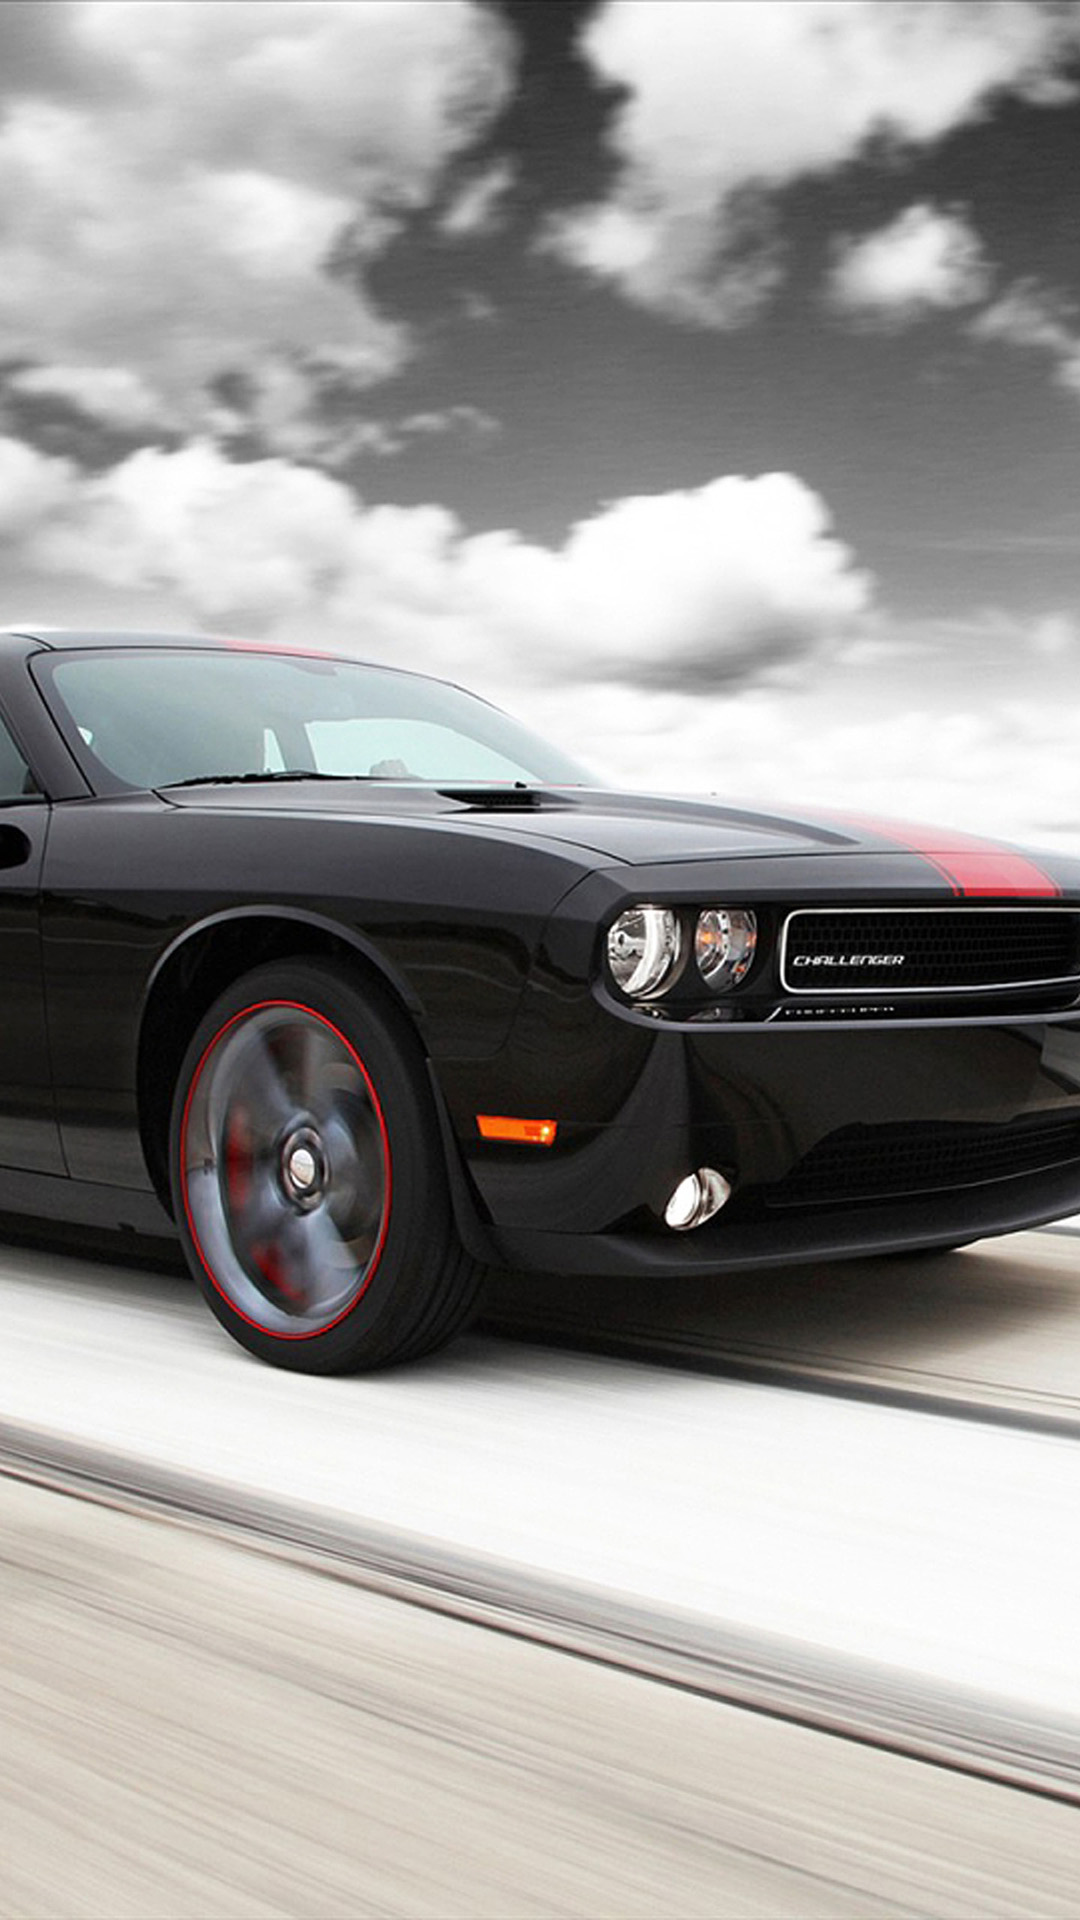 Dodge challenger 02 Wallpapers for Galaxy S5 1080x1920